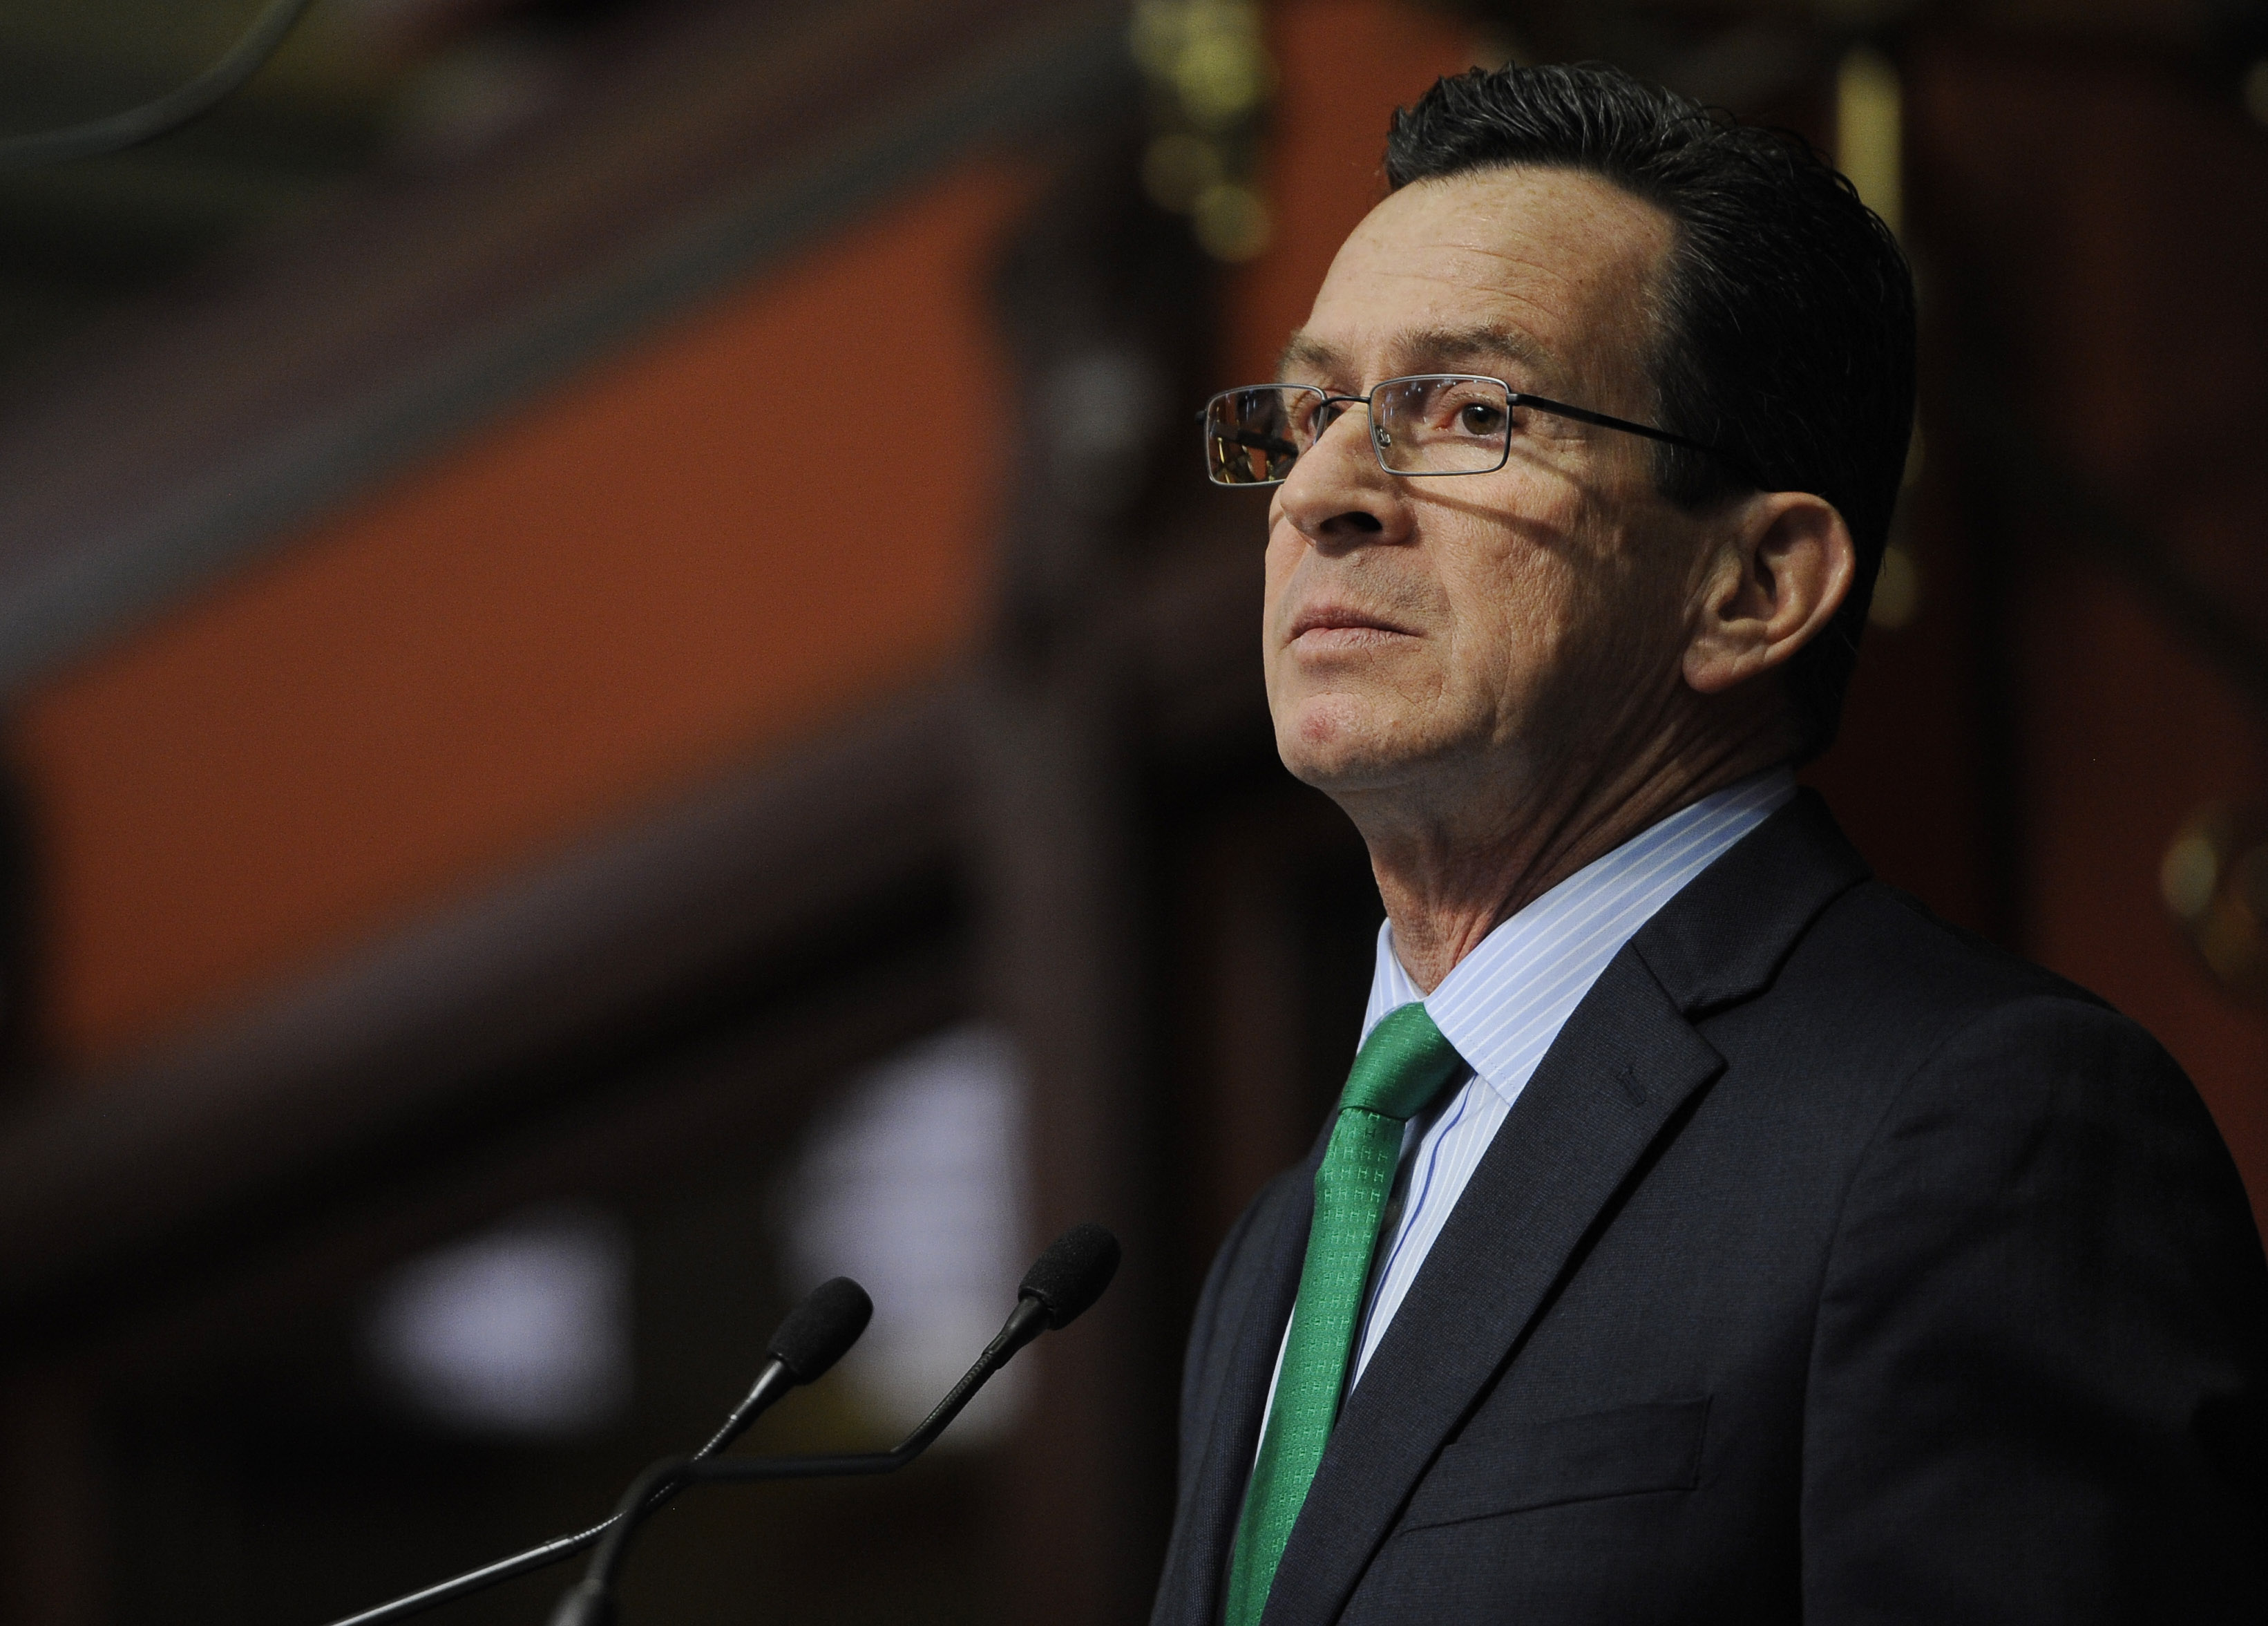 Policy Corner: Shades of Malloy: Lamont's Plan to Push Teacher Pension Costs onto Municipalities